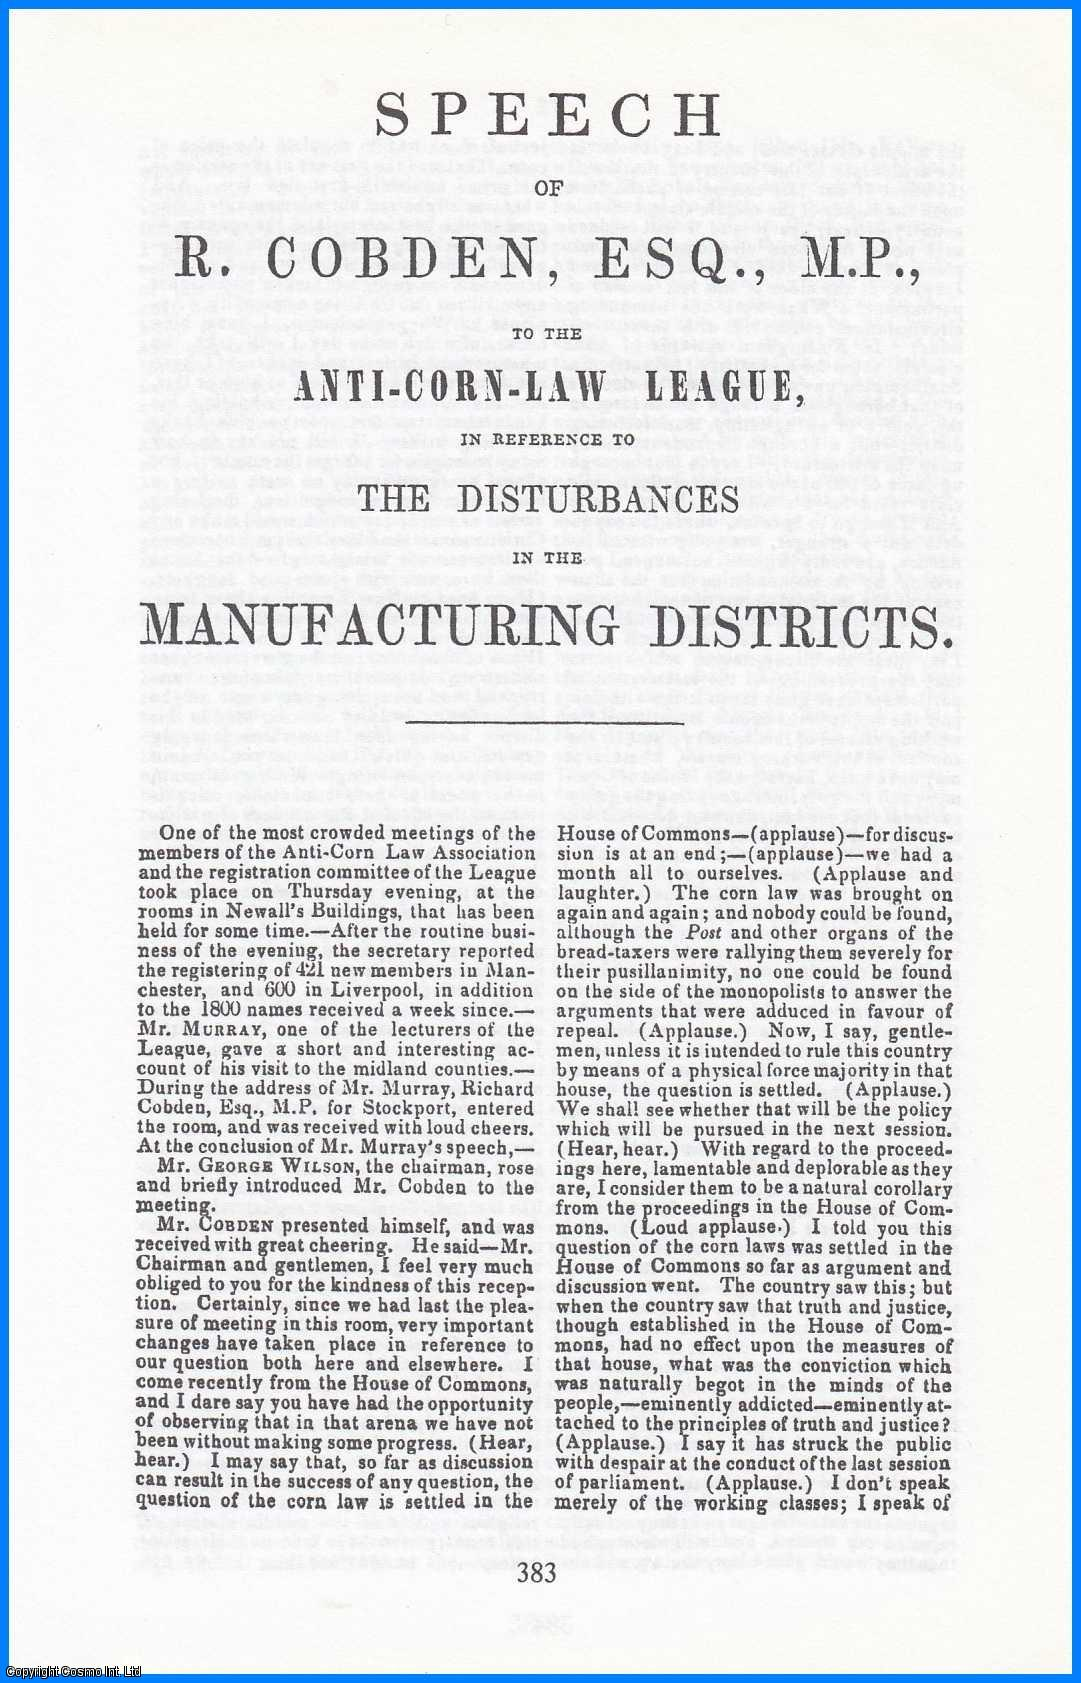 COBDEN, RICHARD - [Corn Laws] Speech of R. Cobden, Esq., M.P., to the Anti-Corn-Law League, in Reference to the Disturbances in the Manufacturing Districts. A disbound facsimile article from a larger volume.